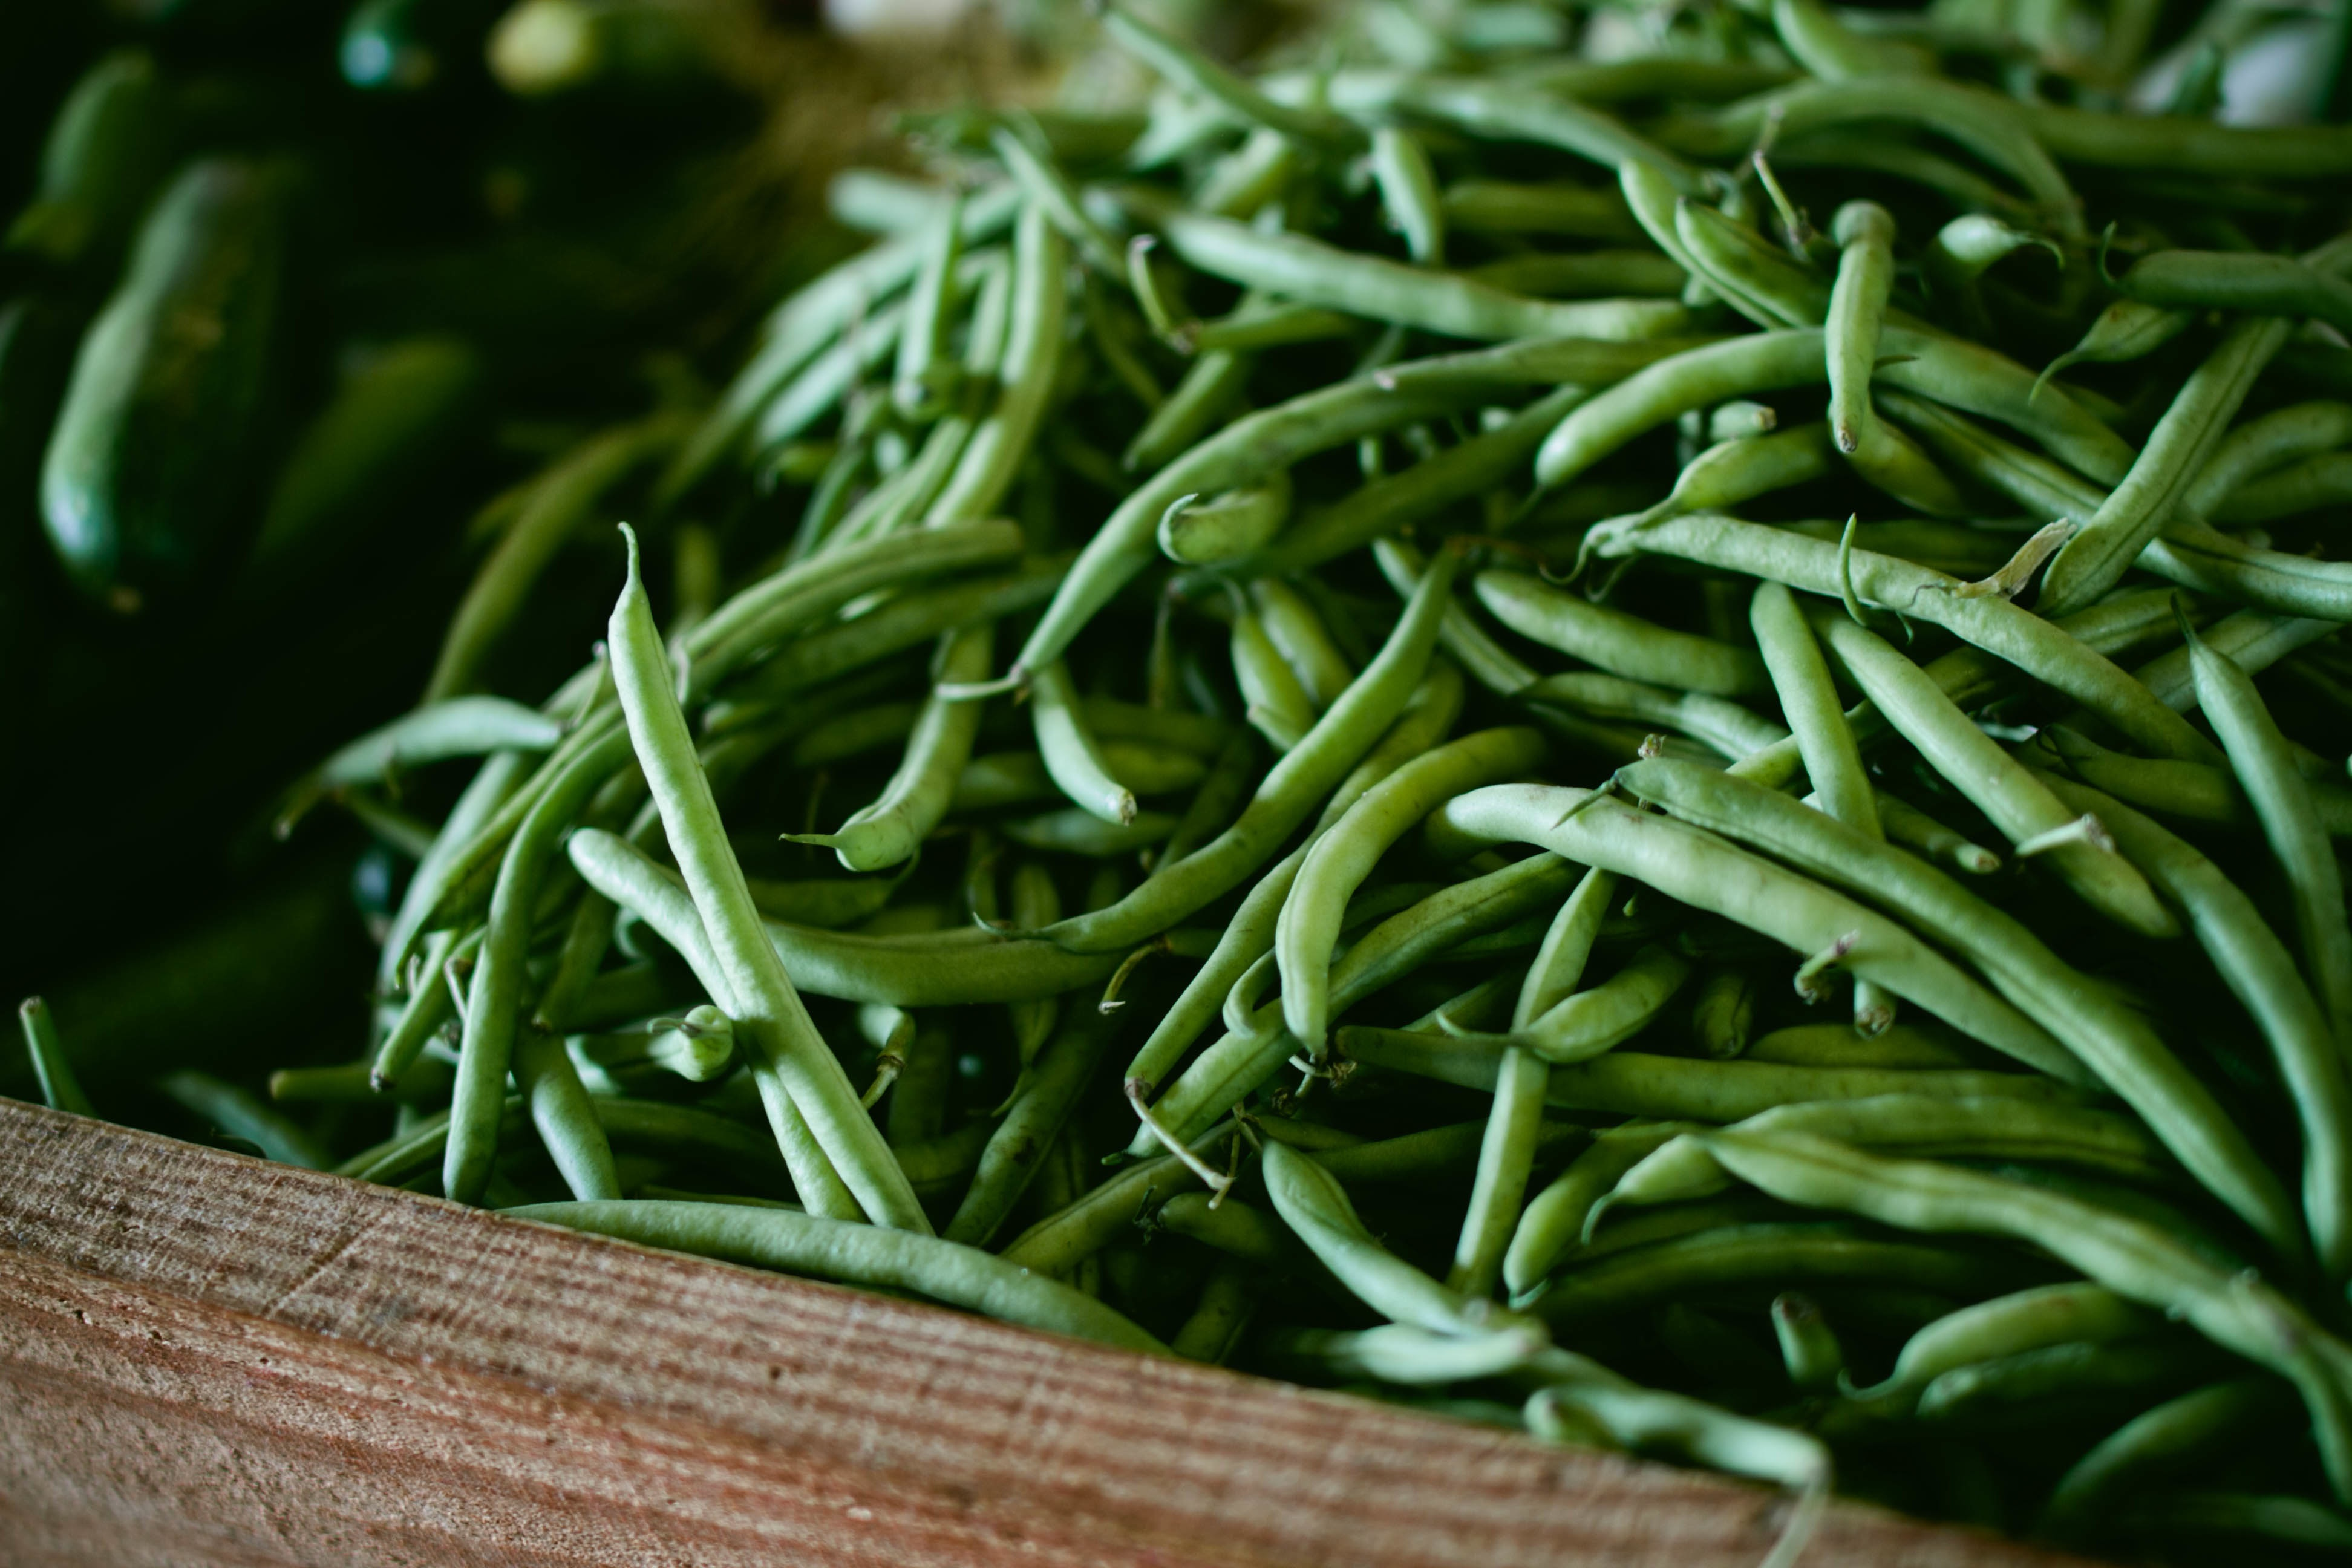 File:Green beans in a wooden box.jpg - Wikimedia Commons